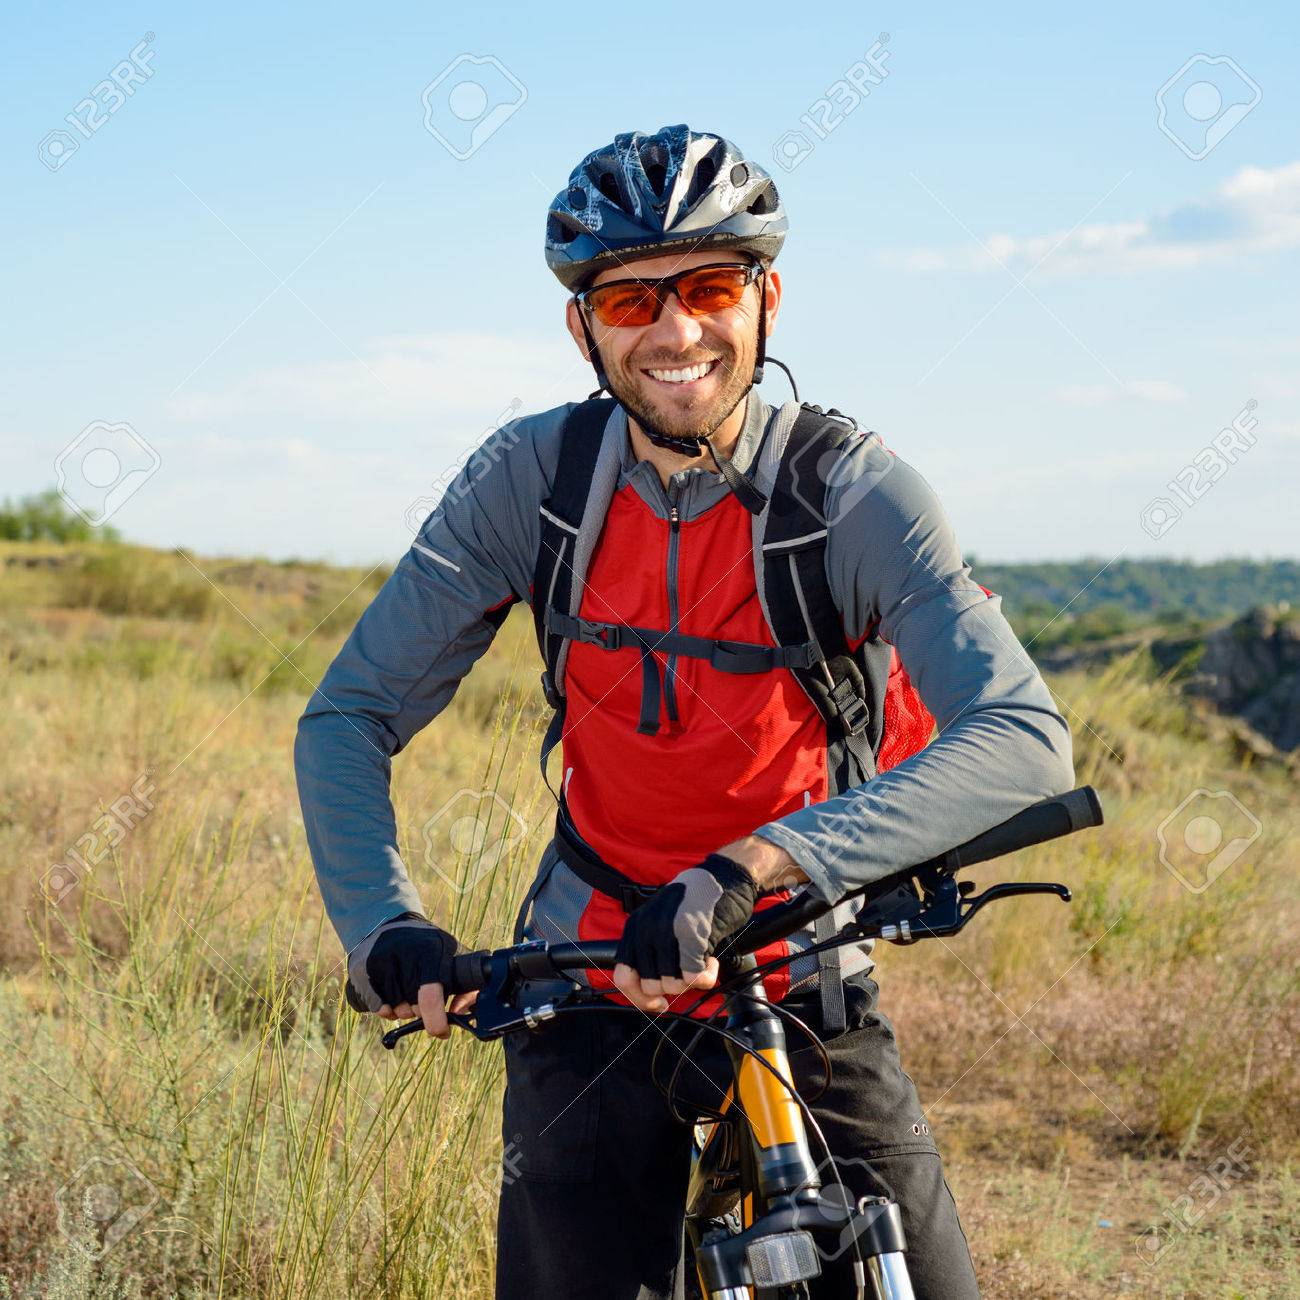 Portrait of Young Cyclist in Helmet and Glasses. Sport Lifestyle Concept. - 44647760